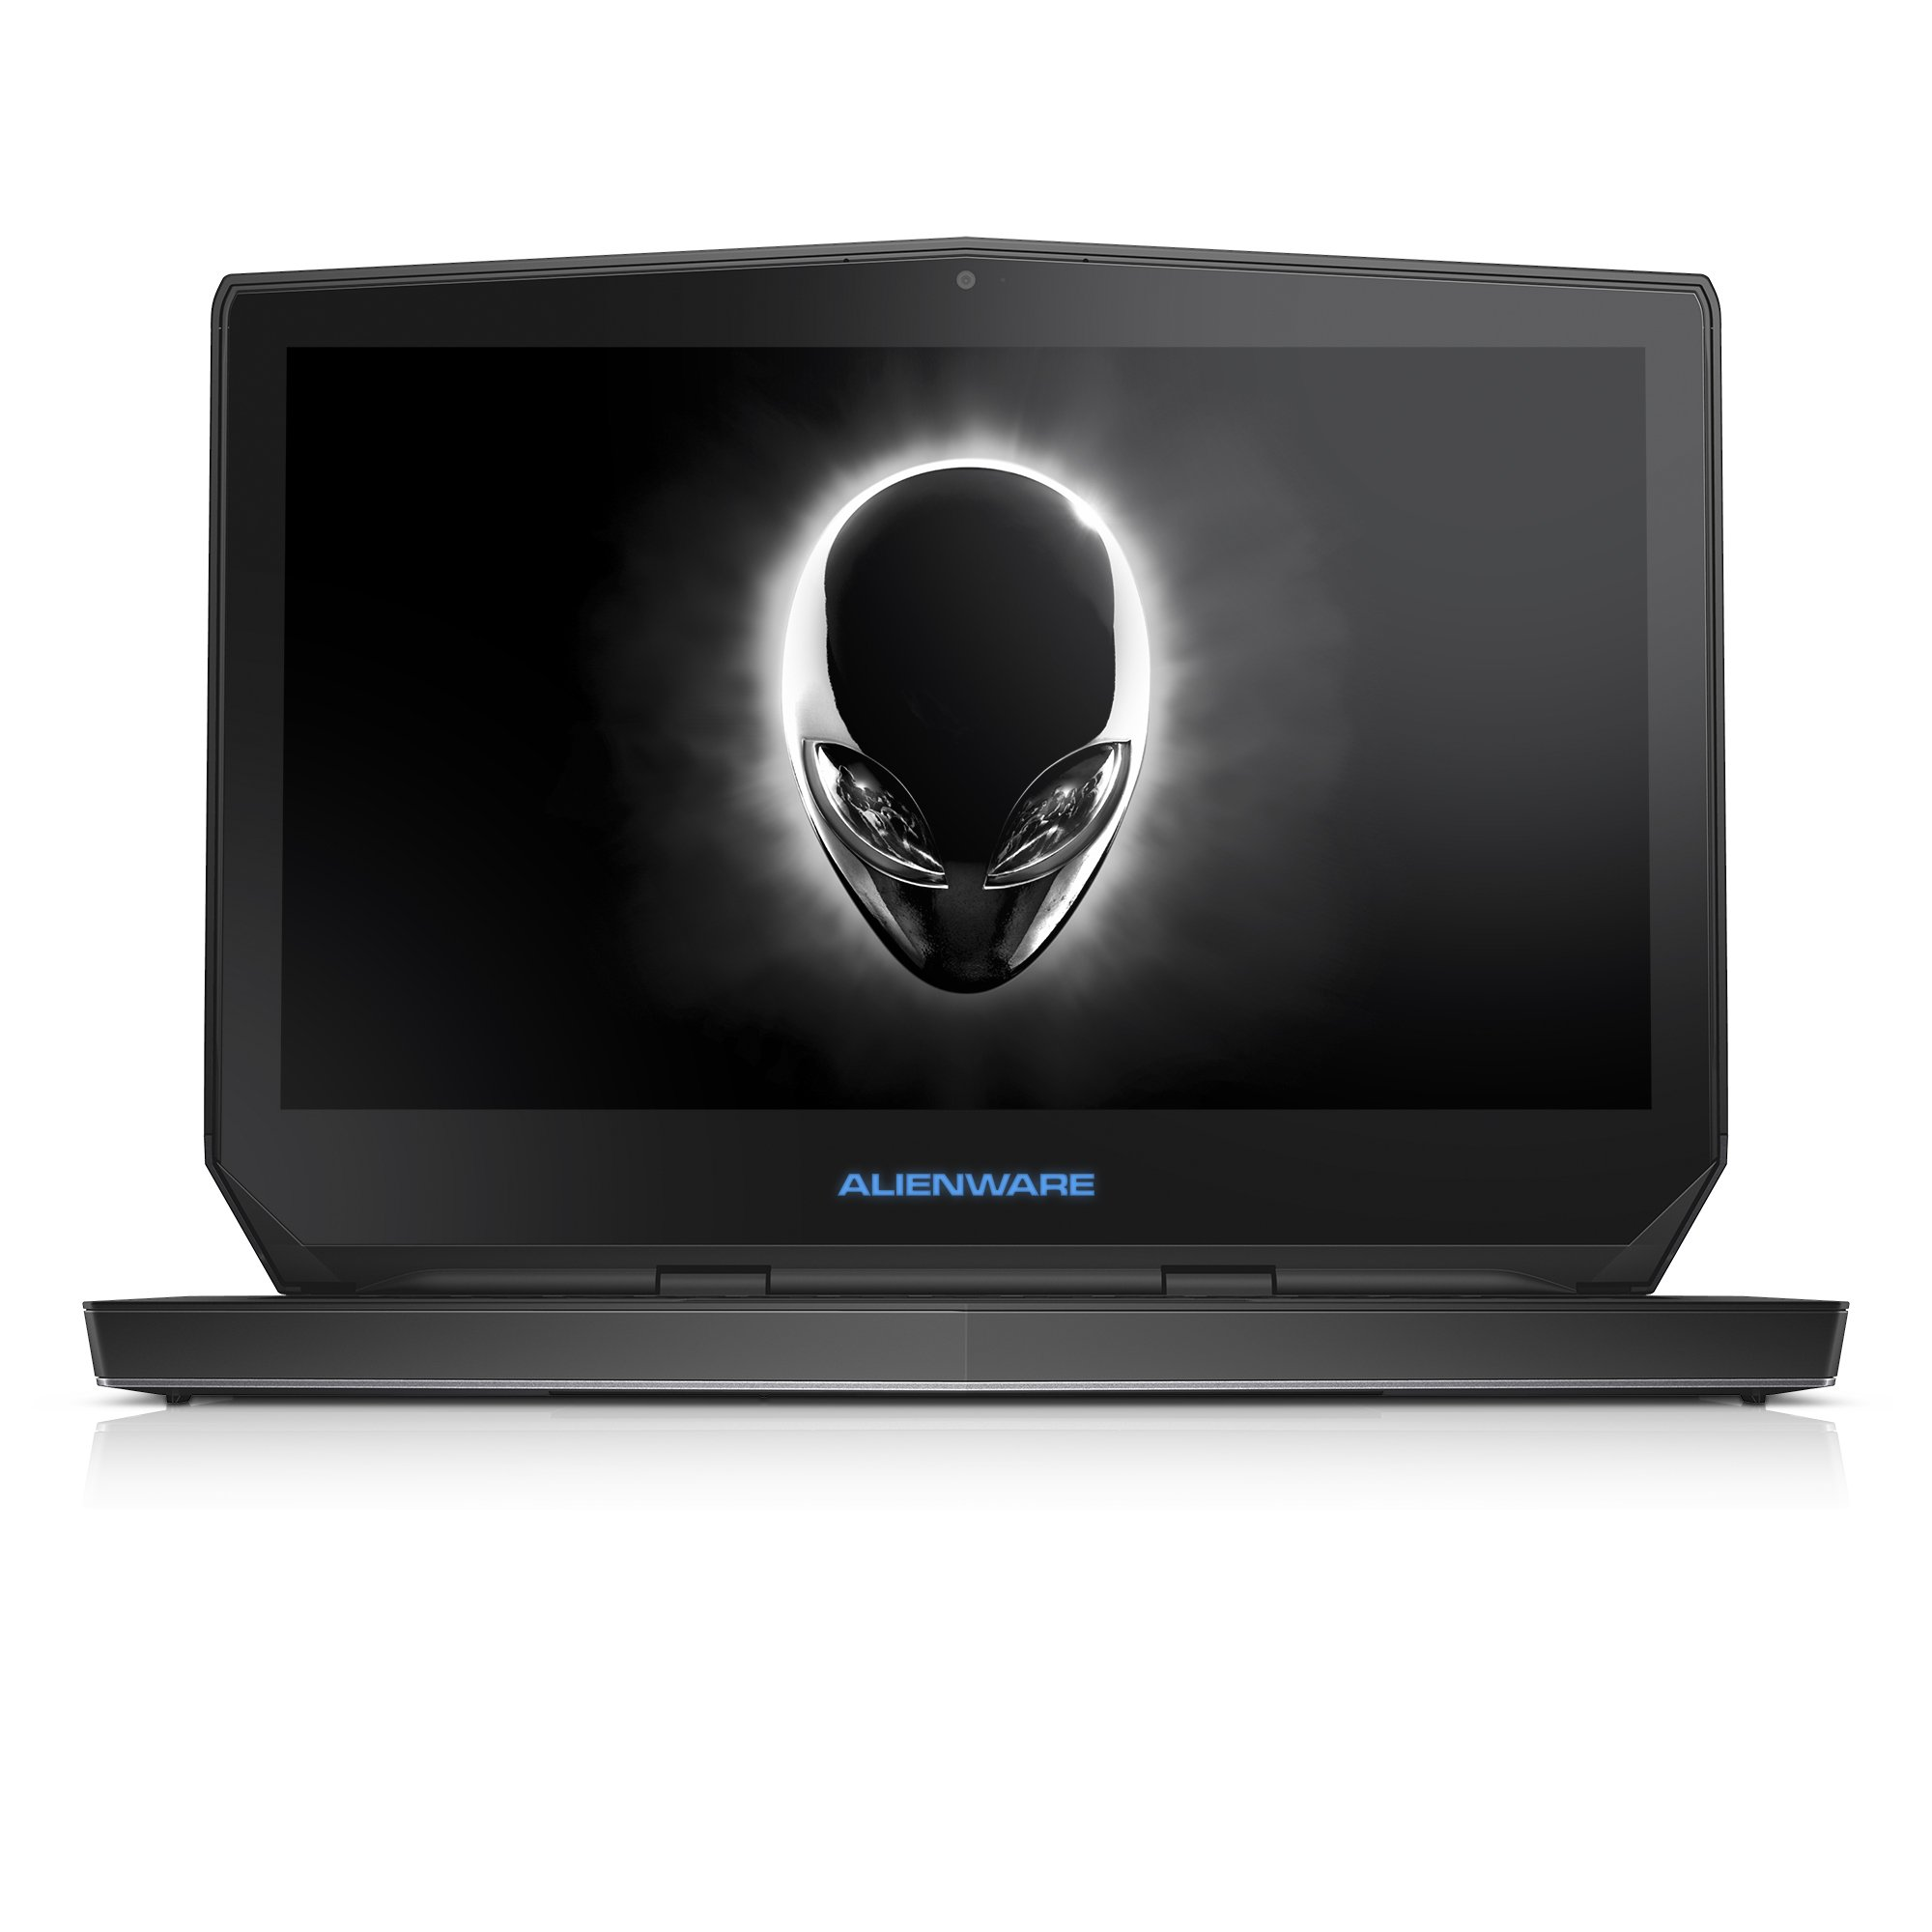 Alienware AW13R2-10011SLV 13 Inch WQXGA+ Touchscreen Laptop (6th Generation Intel Core i7, 16 GB RAM, 512 GB SSD) NVIDIA GeForce GTX 960M